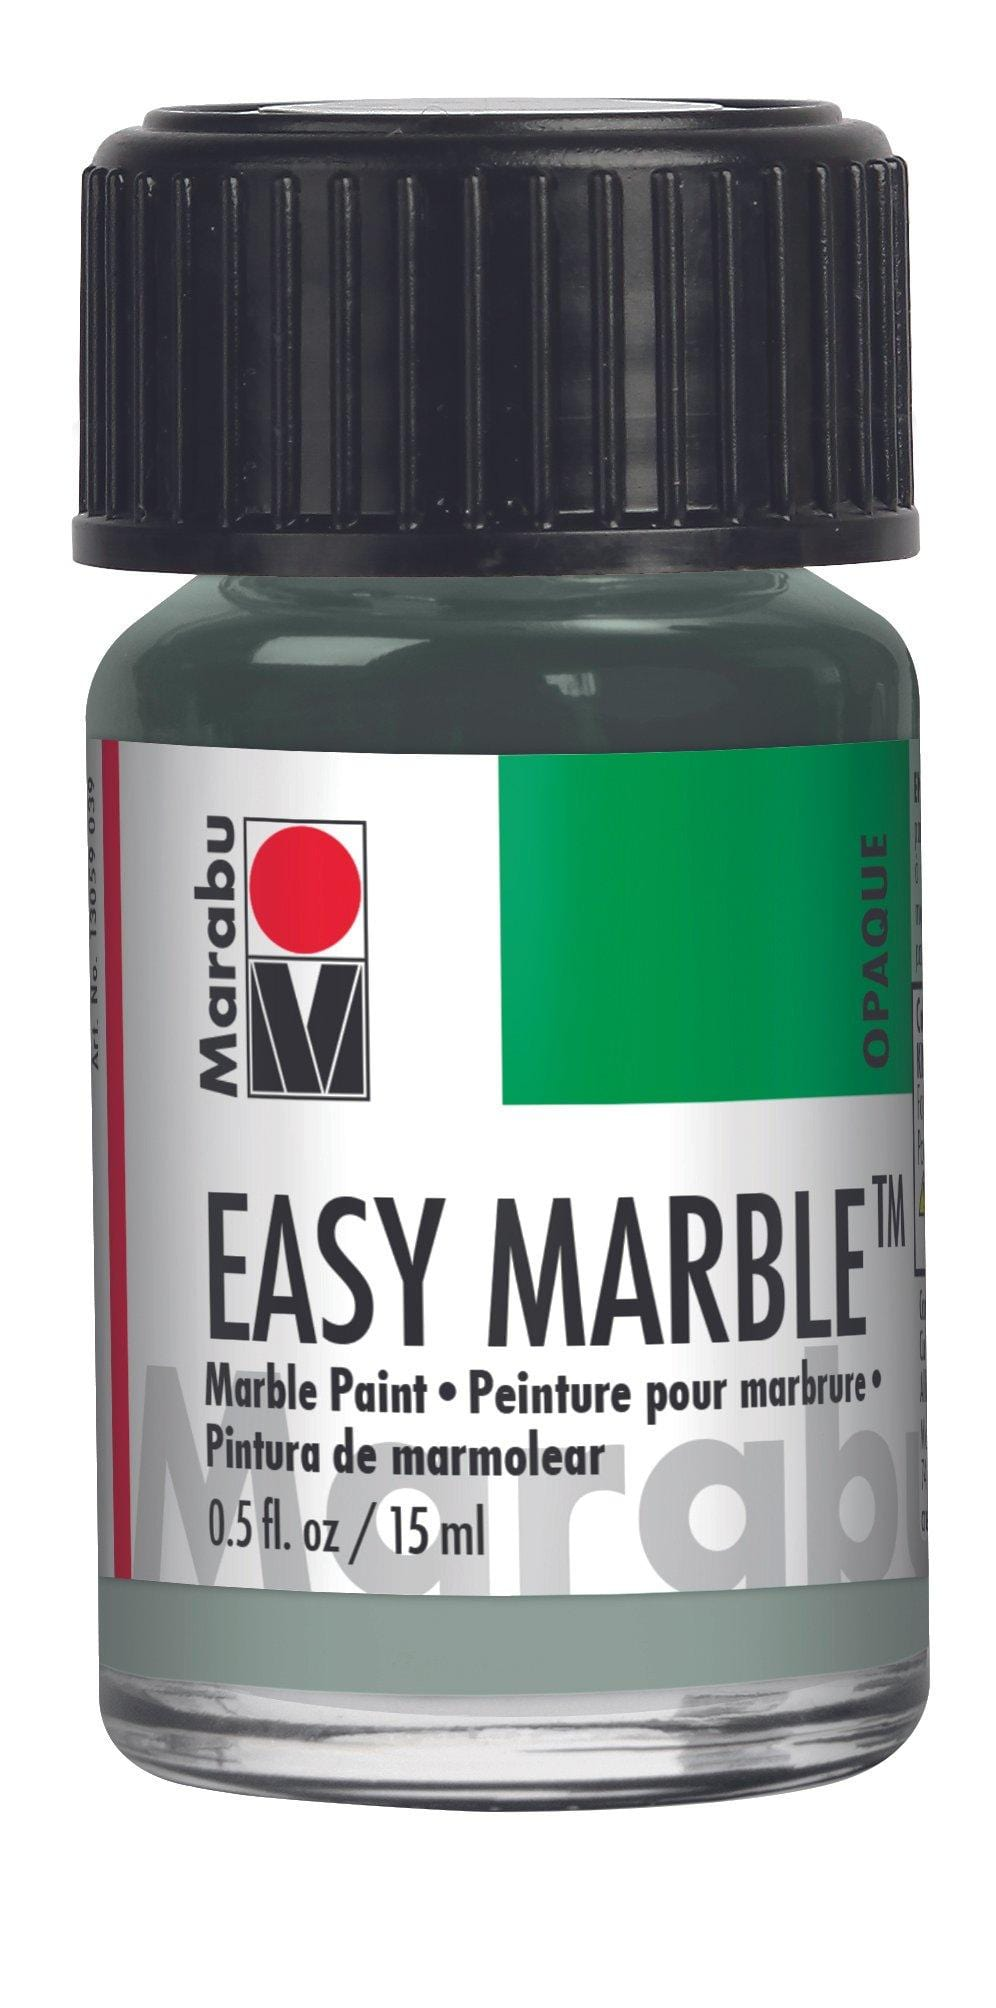 Mistletoe 159 - Marabu Easy Marble Paint